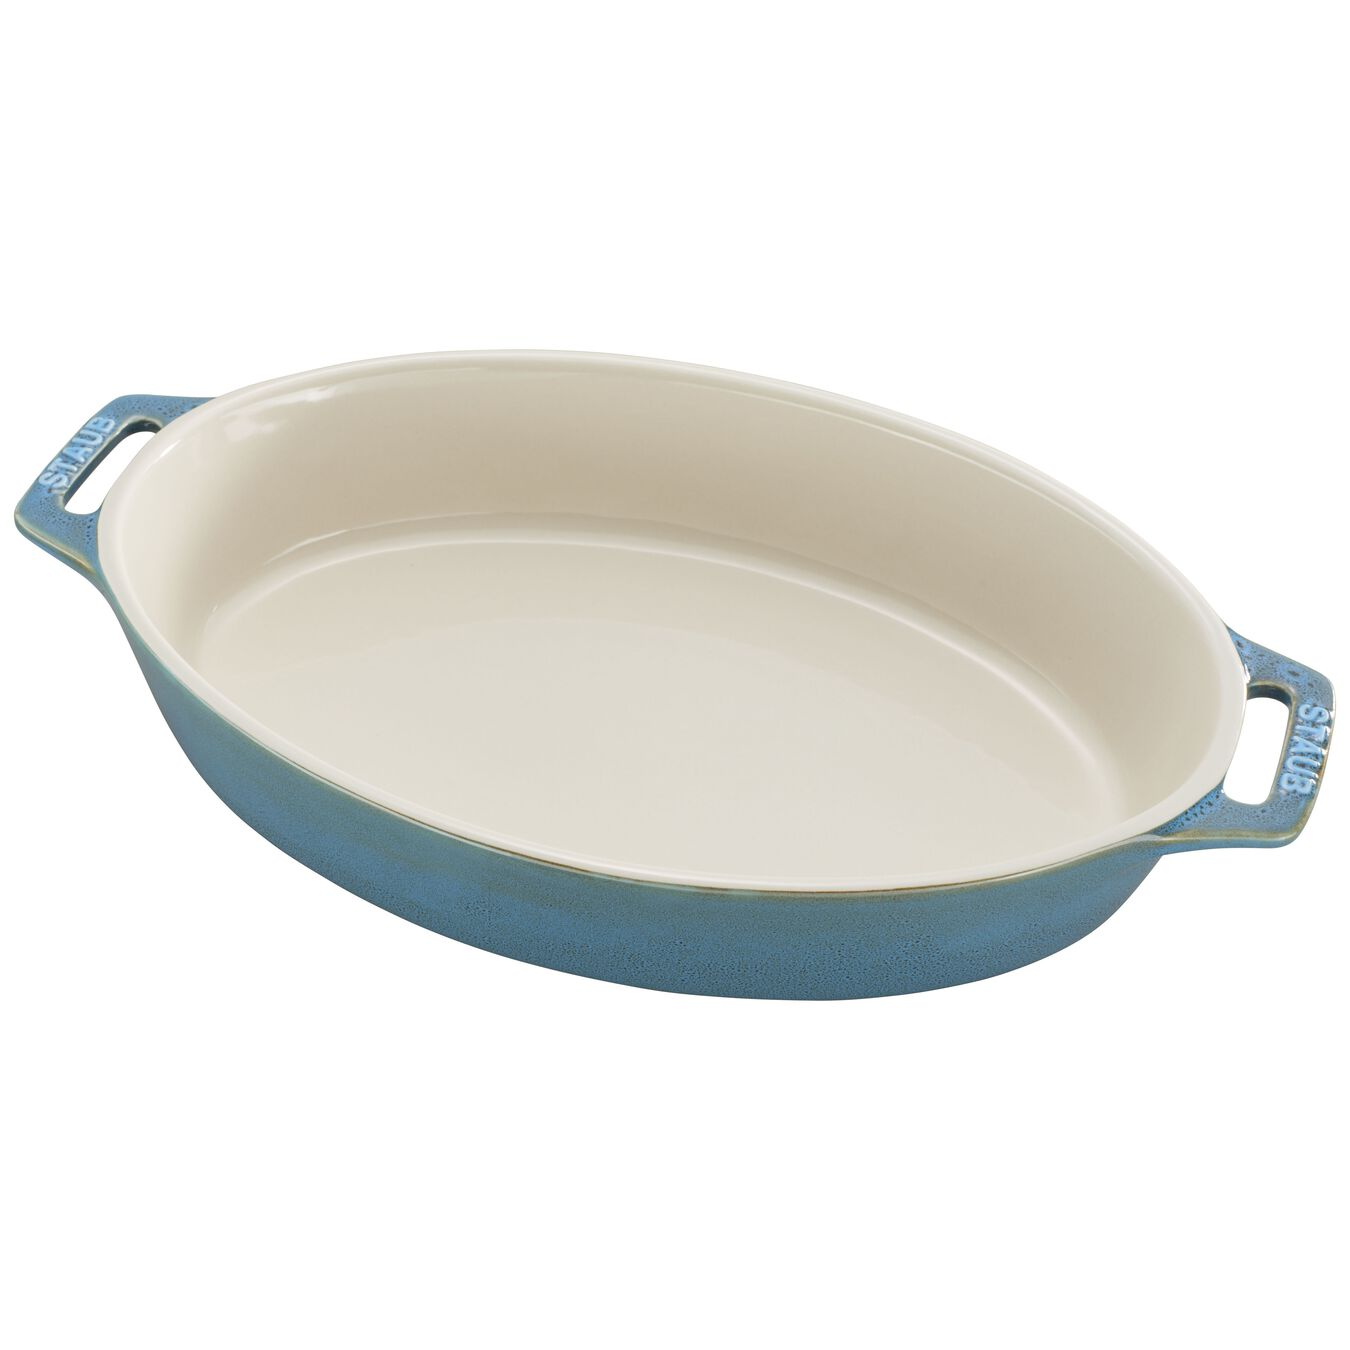 Ceramic oval Oven dish, Ancient-Turquoise,,large 2